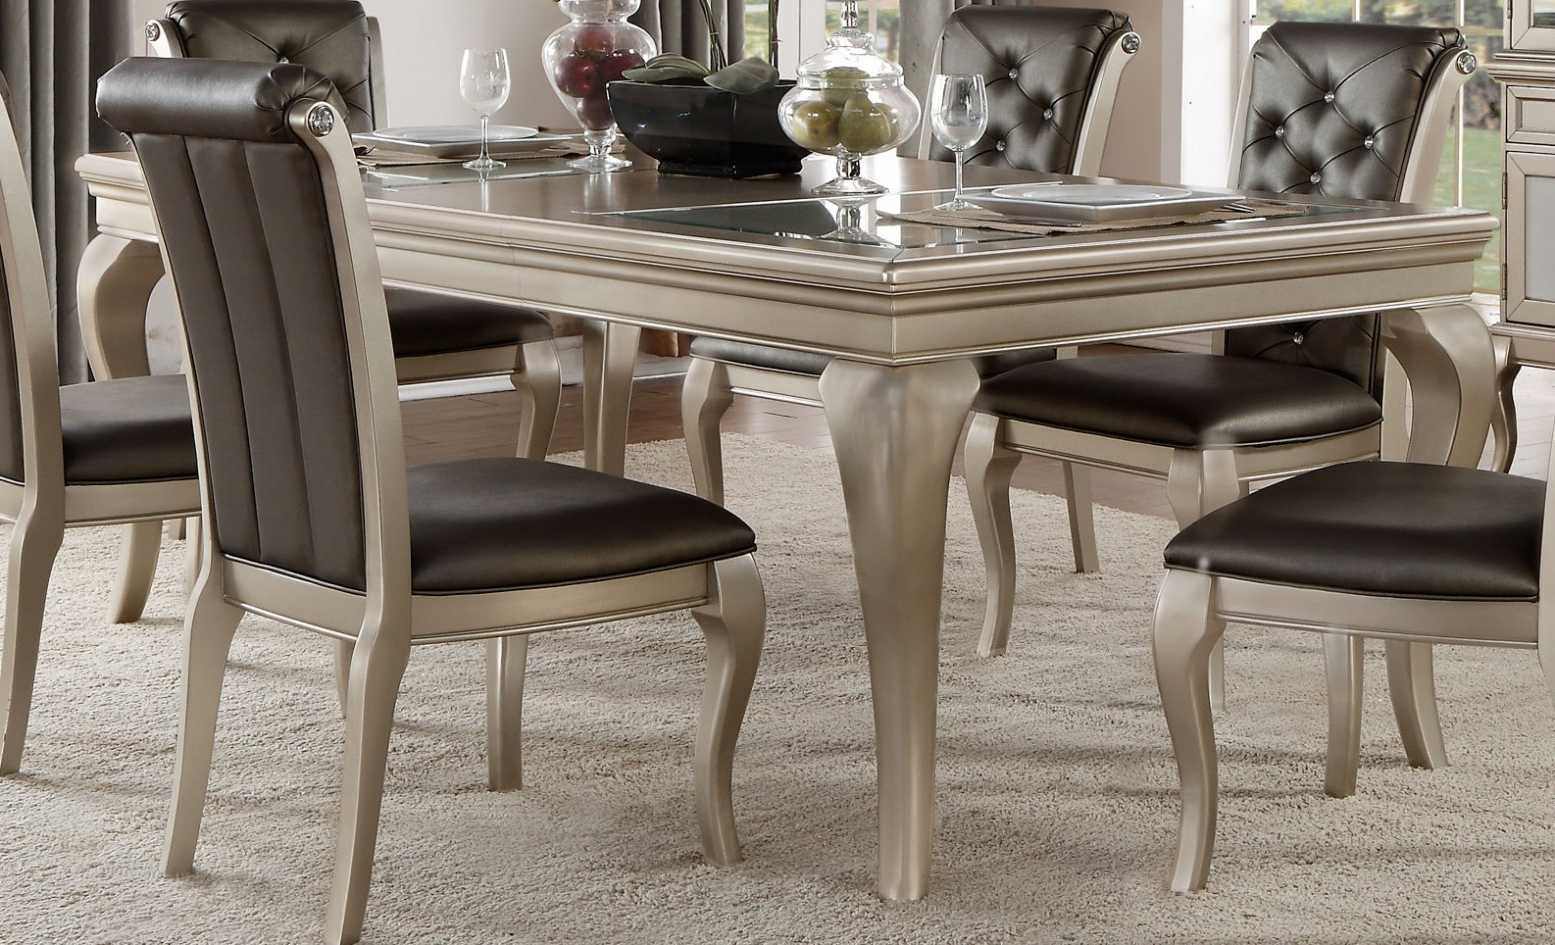 Crawford Transitional Rectangular Extendable Dining Table Within Popular Transitional Rectangular Dining Tables (View 22 of 30)